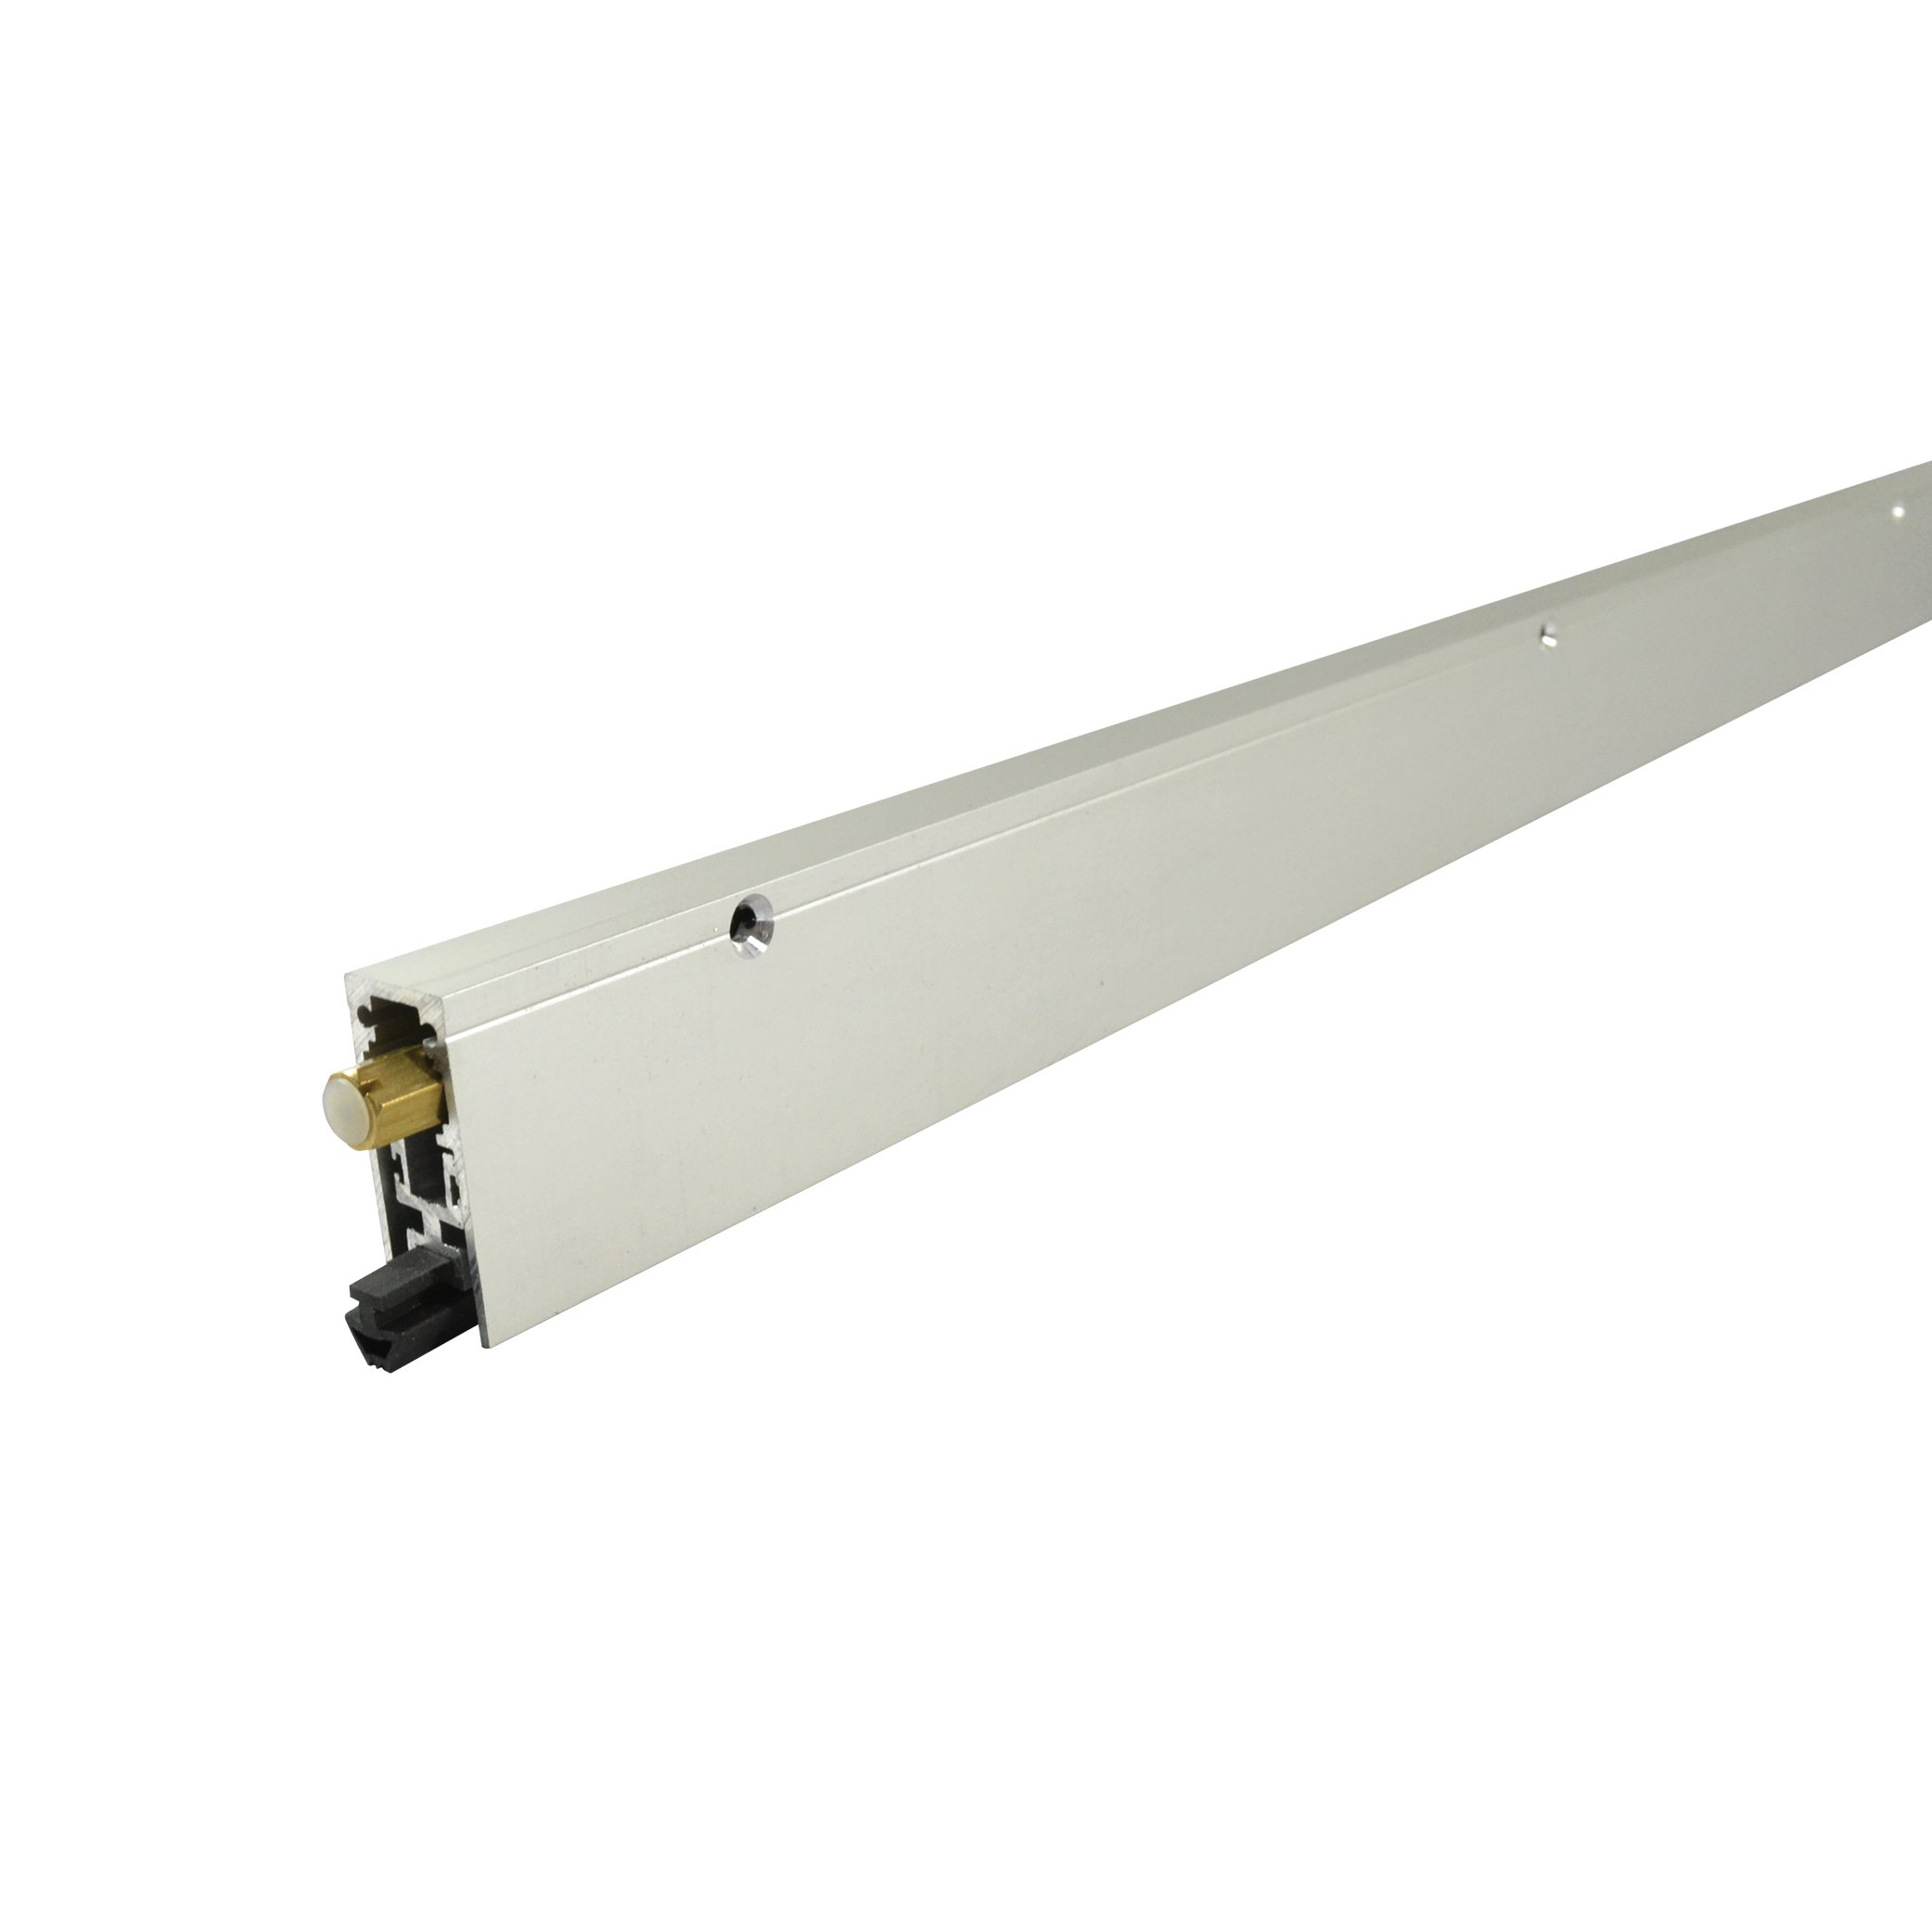 Fire Rated/Regular Duty/Clear Anodized Aluminum/Surface Automatic Door Bottom with Solid Rubber Extrusion (7153CA), SMS # 6 x 1 1/4'' Supplied, (11/16'' W x 1-25/32'' H x 36''L)